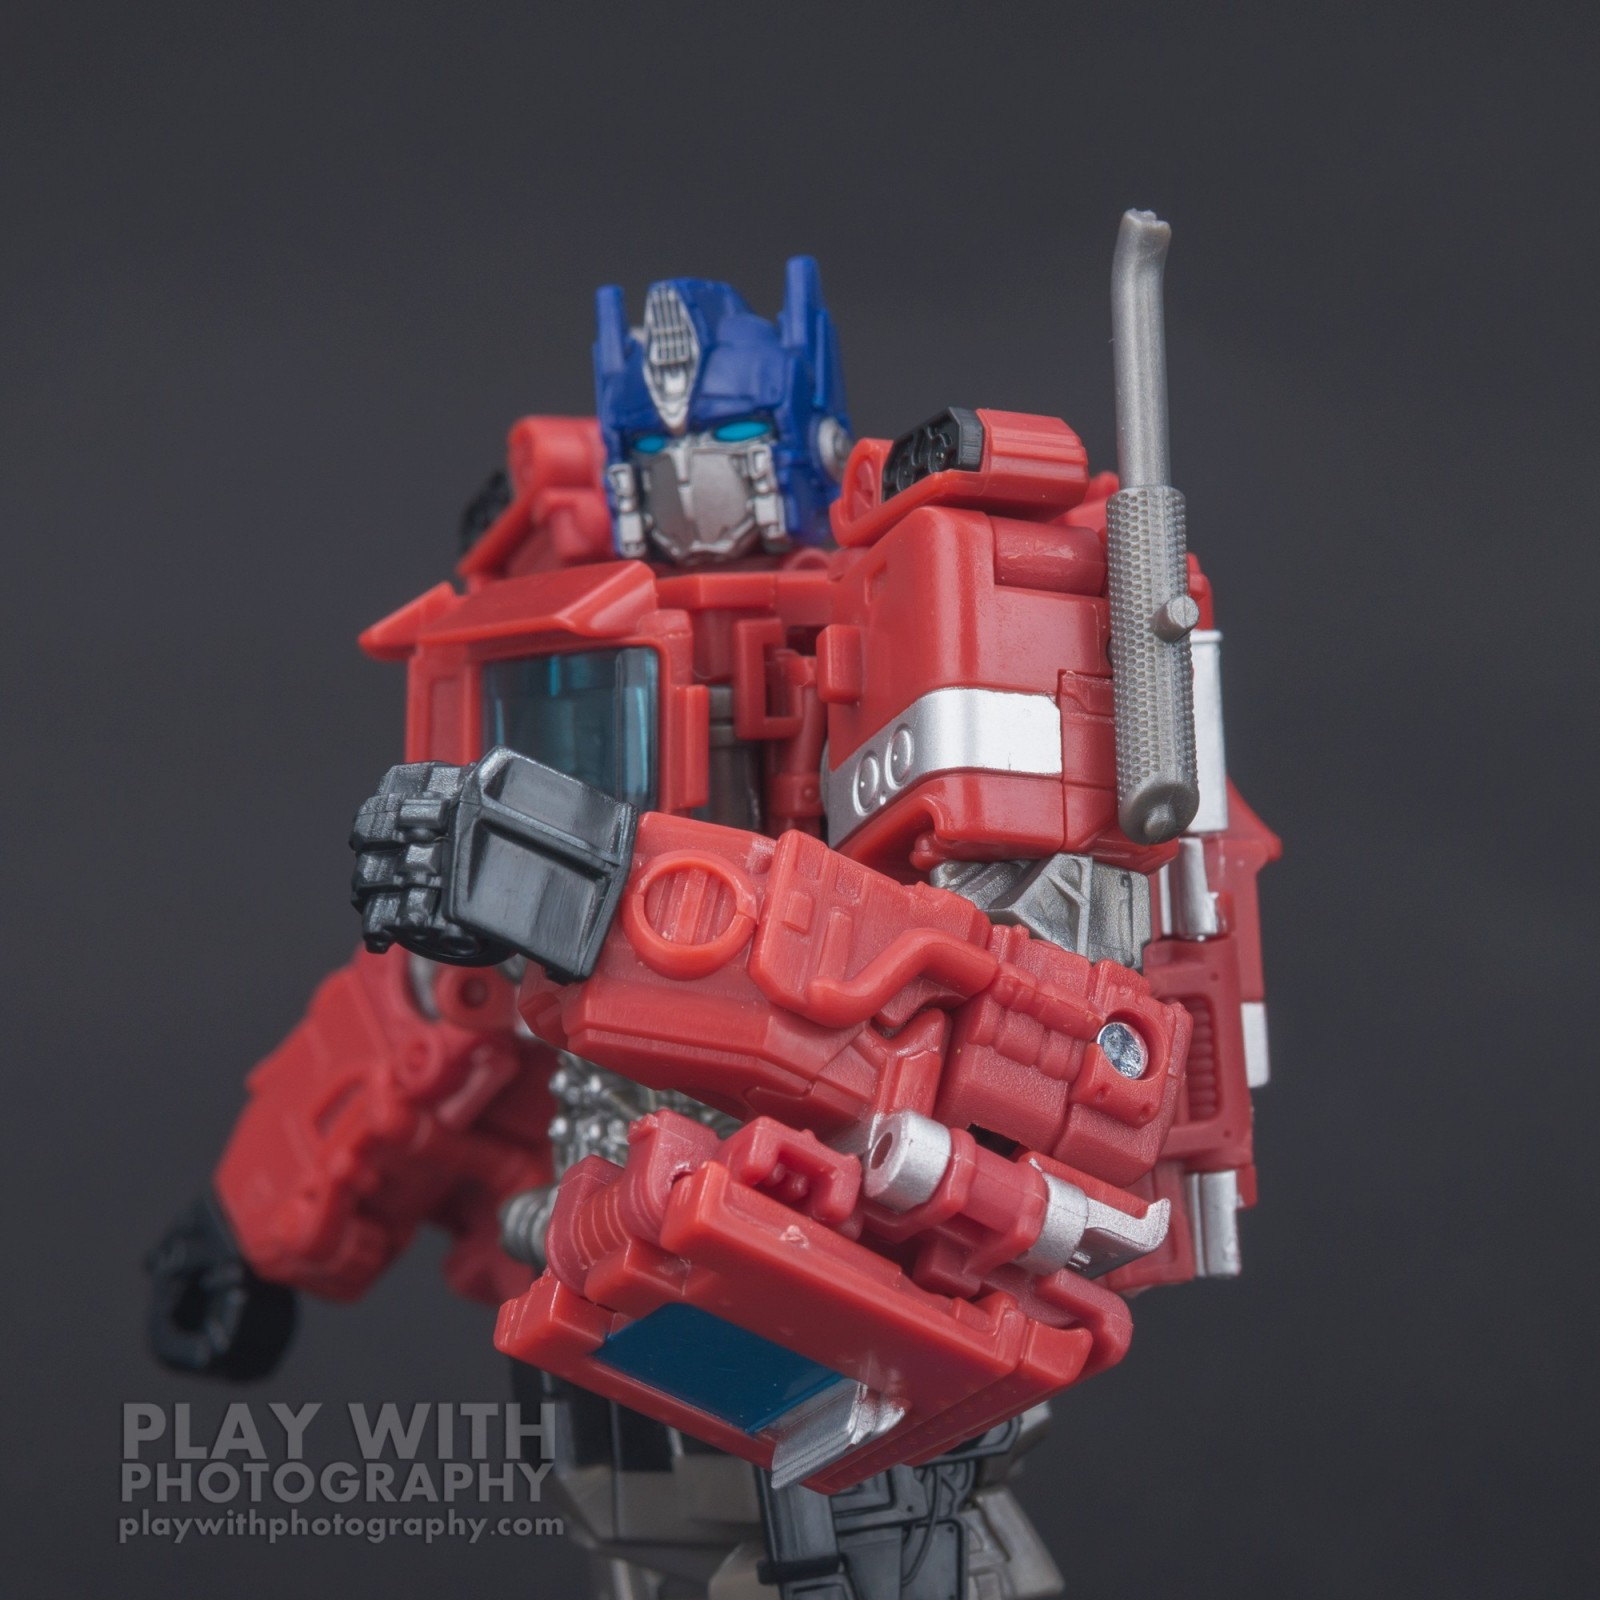 Transformers News: Studio Series 38 Bumblebee Movie Optimus Prime Out at Select Stores in the US + New Pics